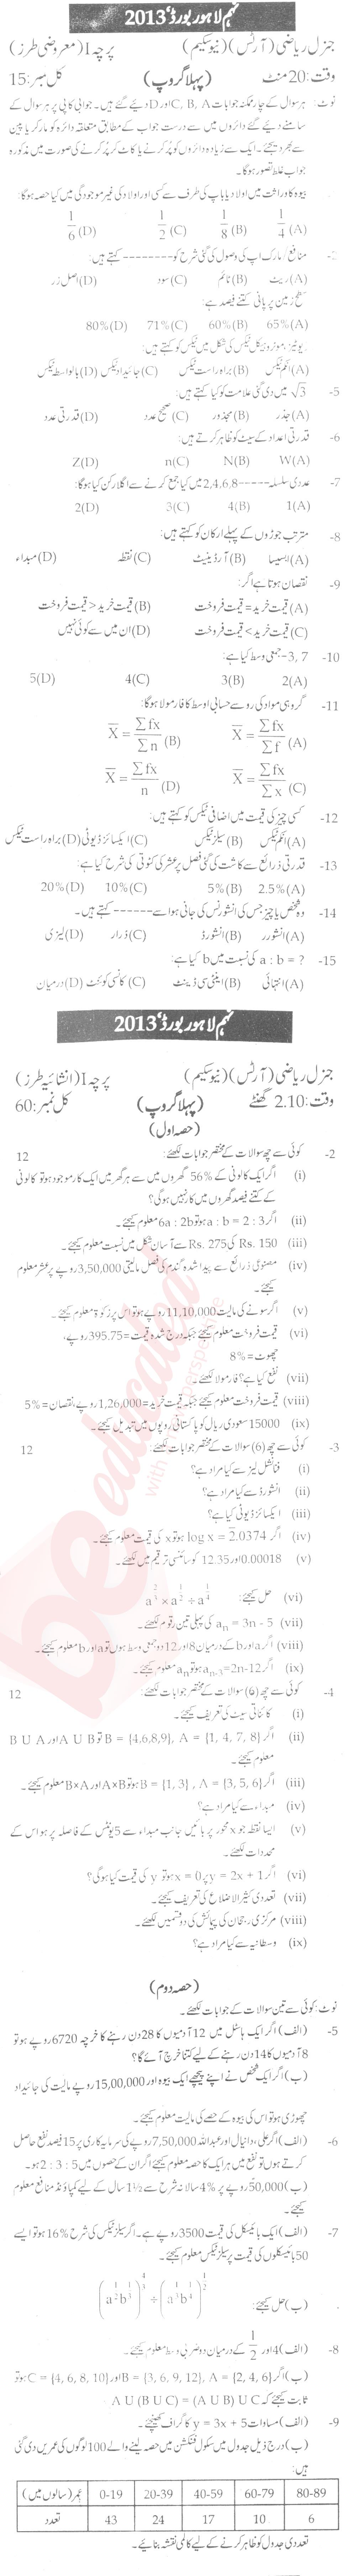 Federal board past papers 9th class general science 2017